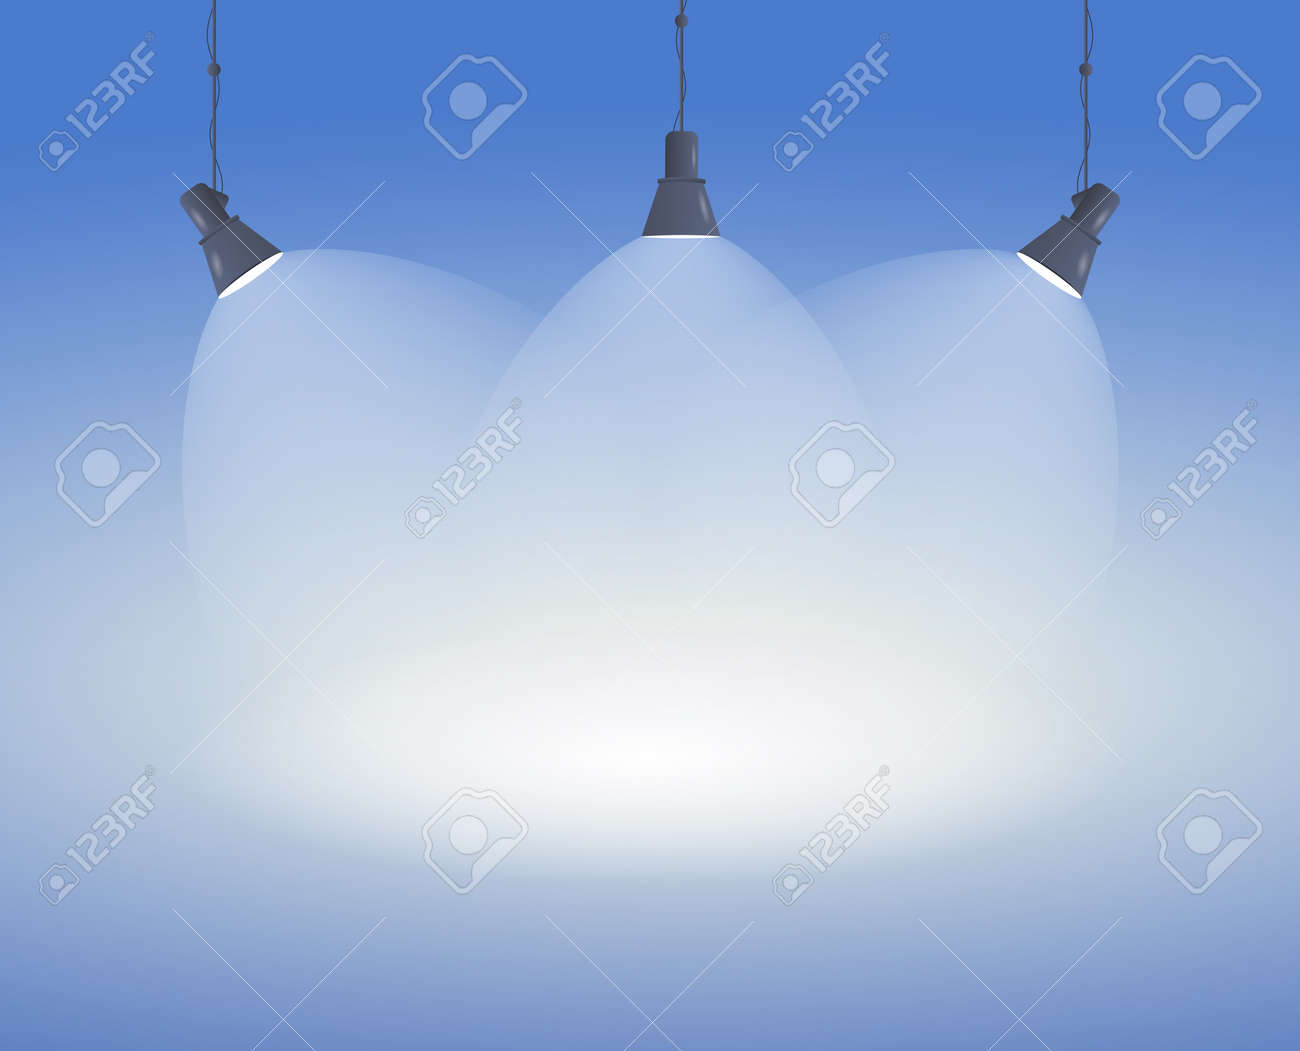 Spotlight background with three converging beams - 155176501